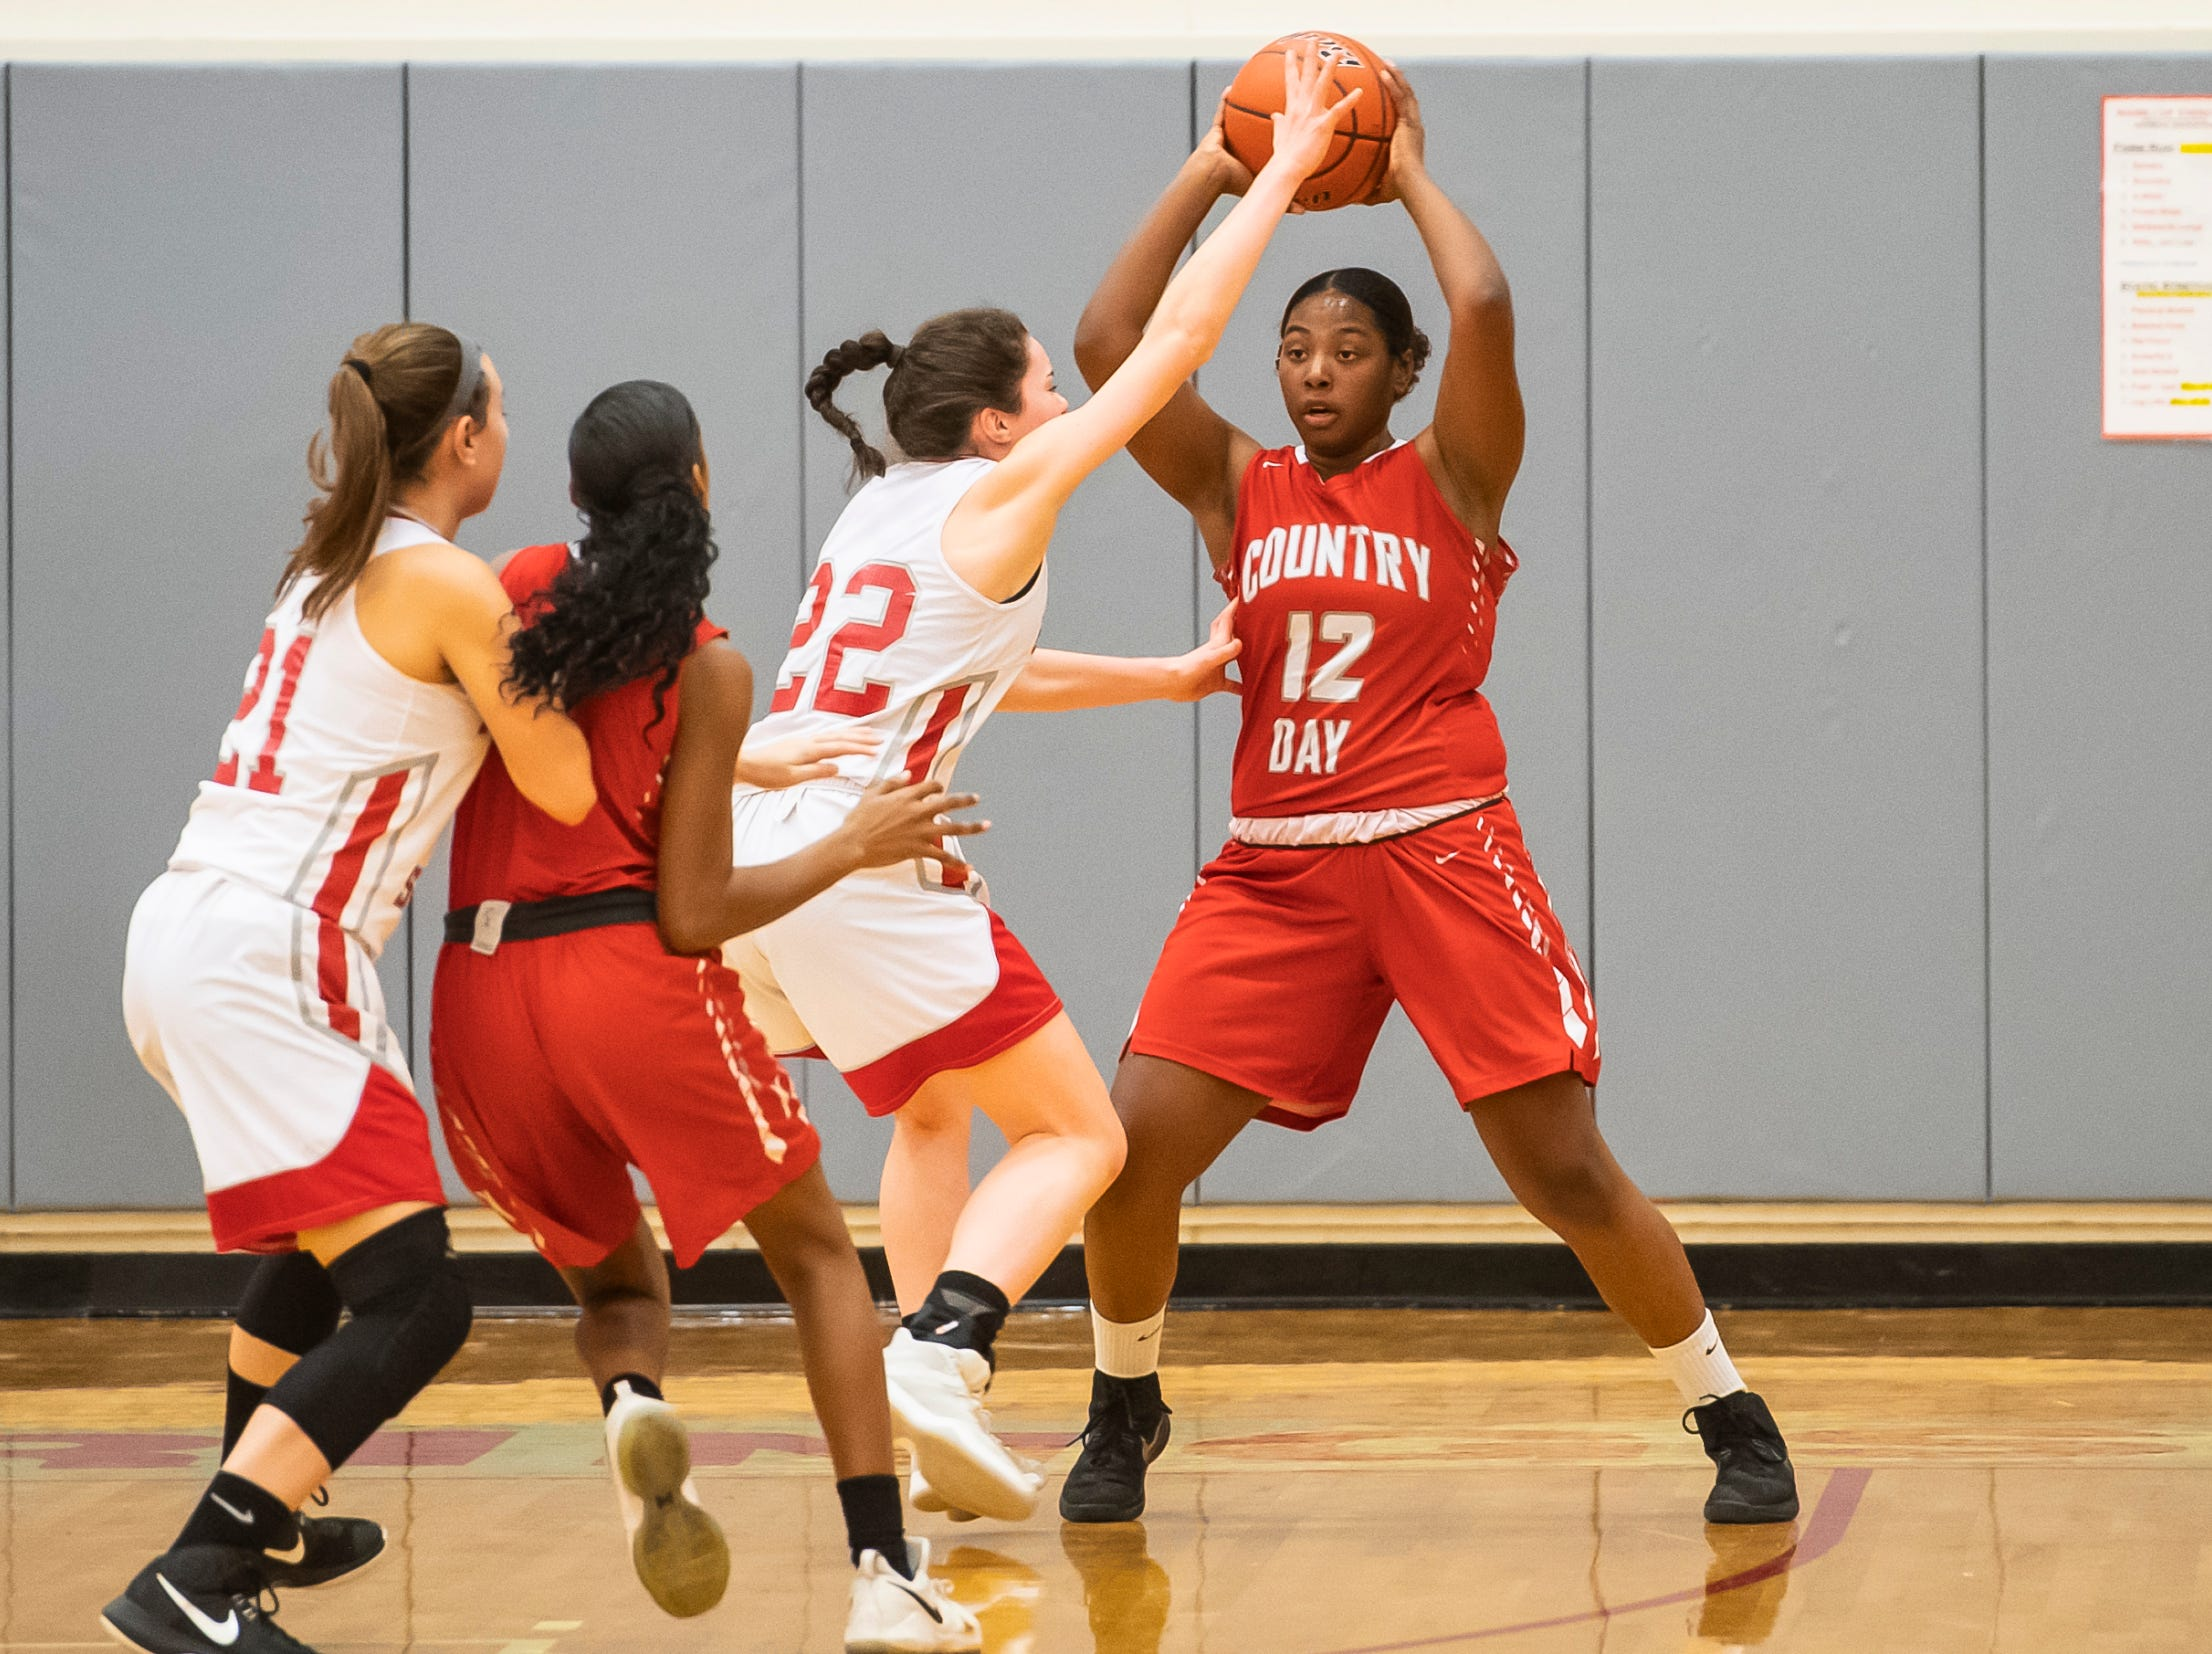 York Country Day School's Ze'Yonie Hawkins (12) looks to pass the ball while being guarded by Bermudian Springs' Lilian Peters (22) at Bermudian Springs High School on Monday, January 14, 2019. The Eagles won 59-20.